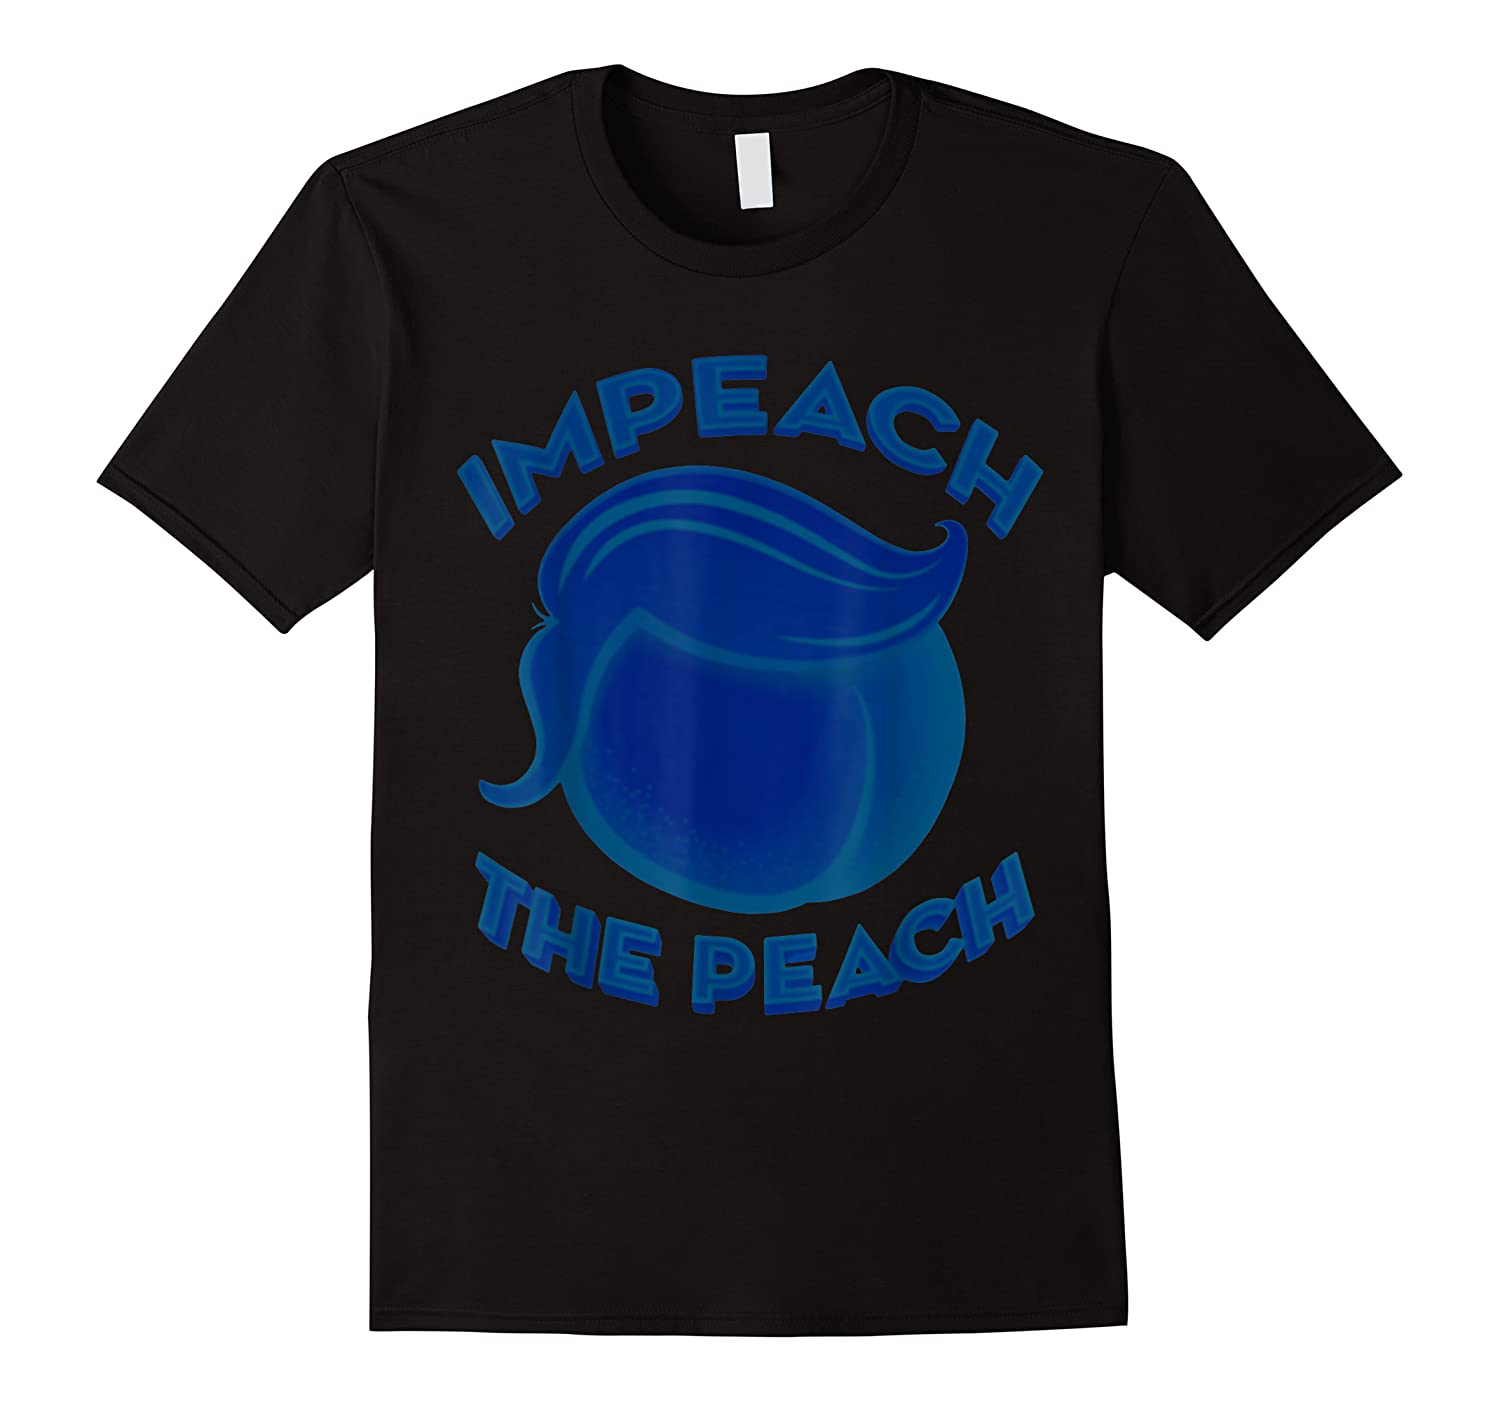 Impeach Halloween T Shirt For Girls And Adults